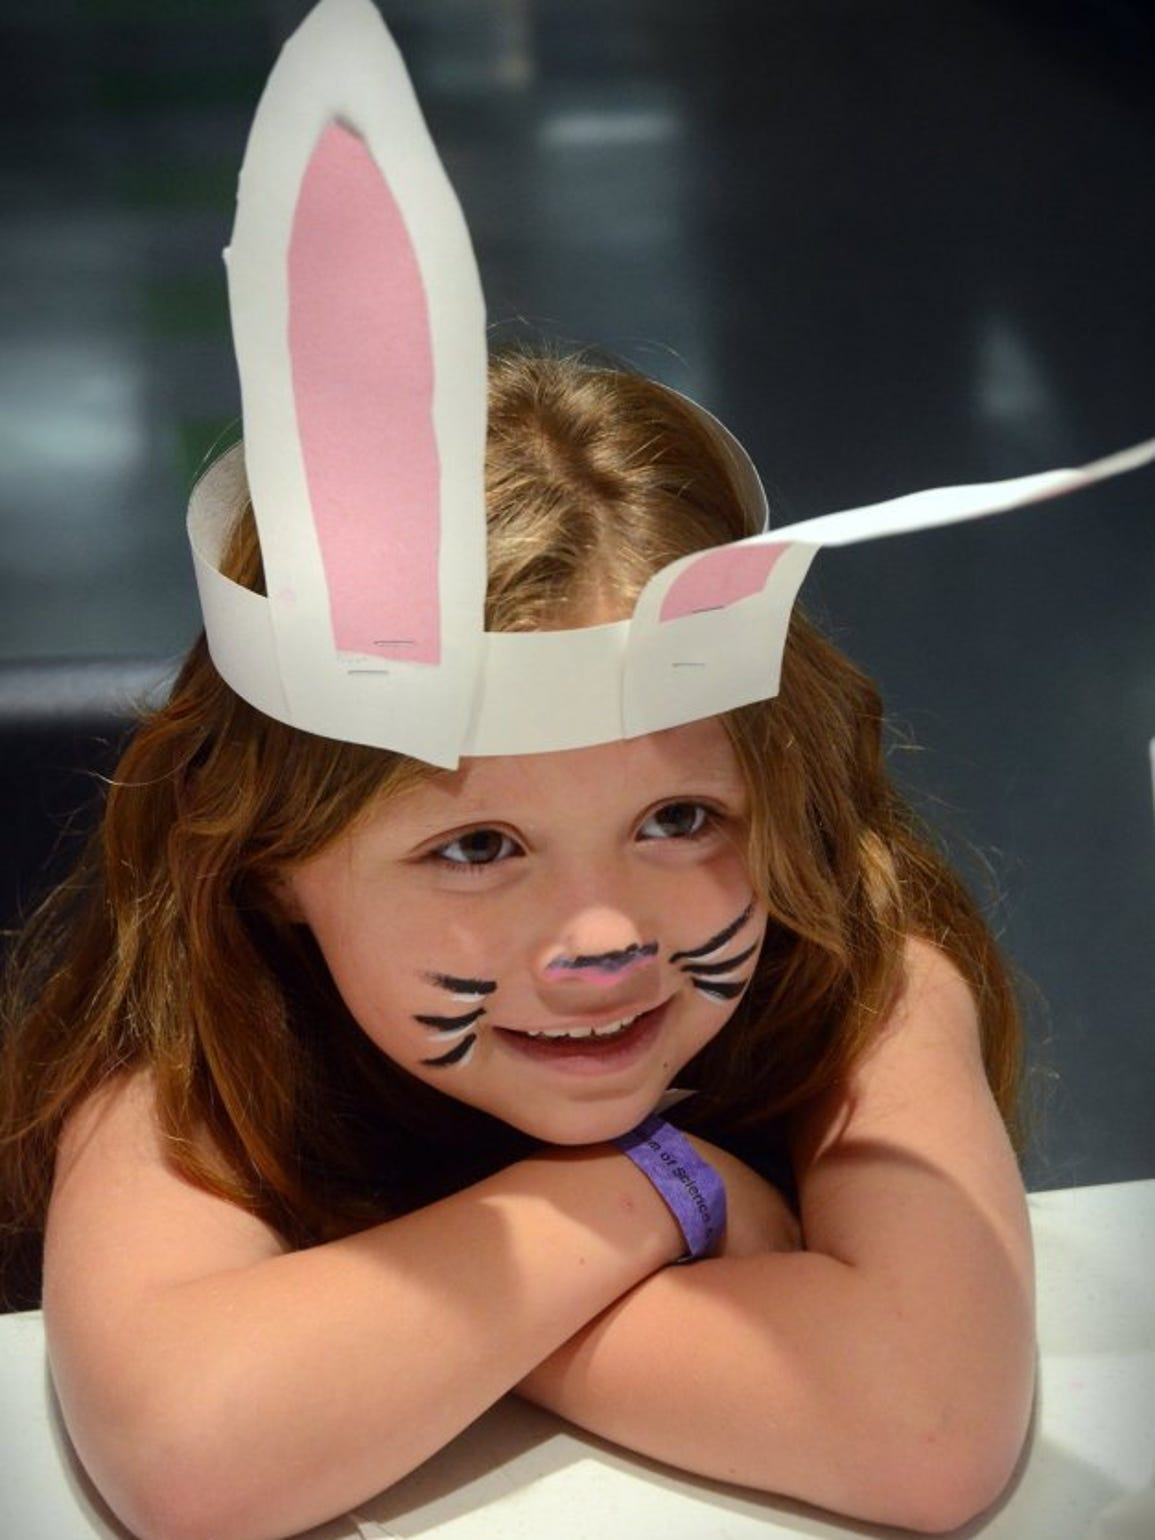 There are several Easter activities around Corpus Christi this weekend.